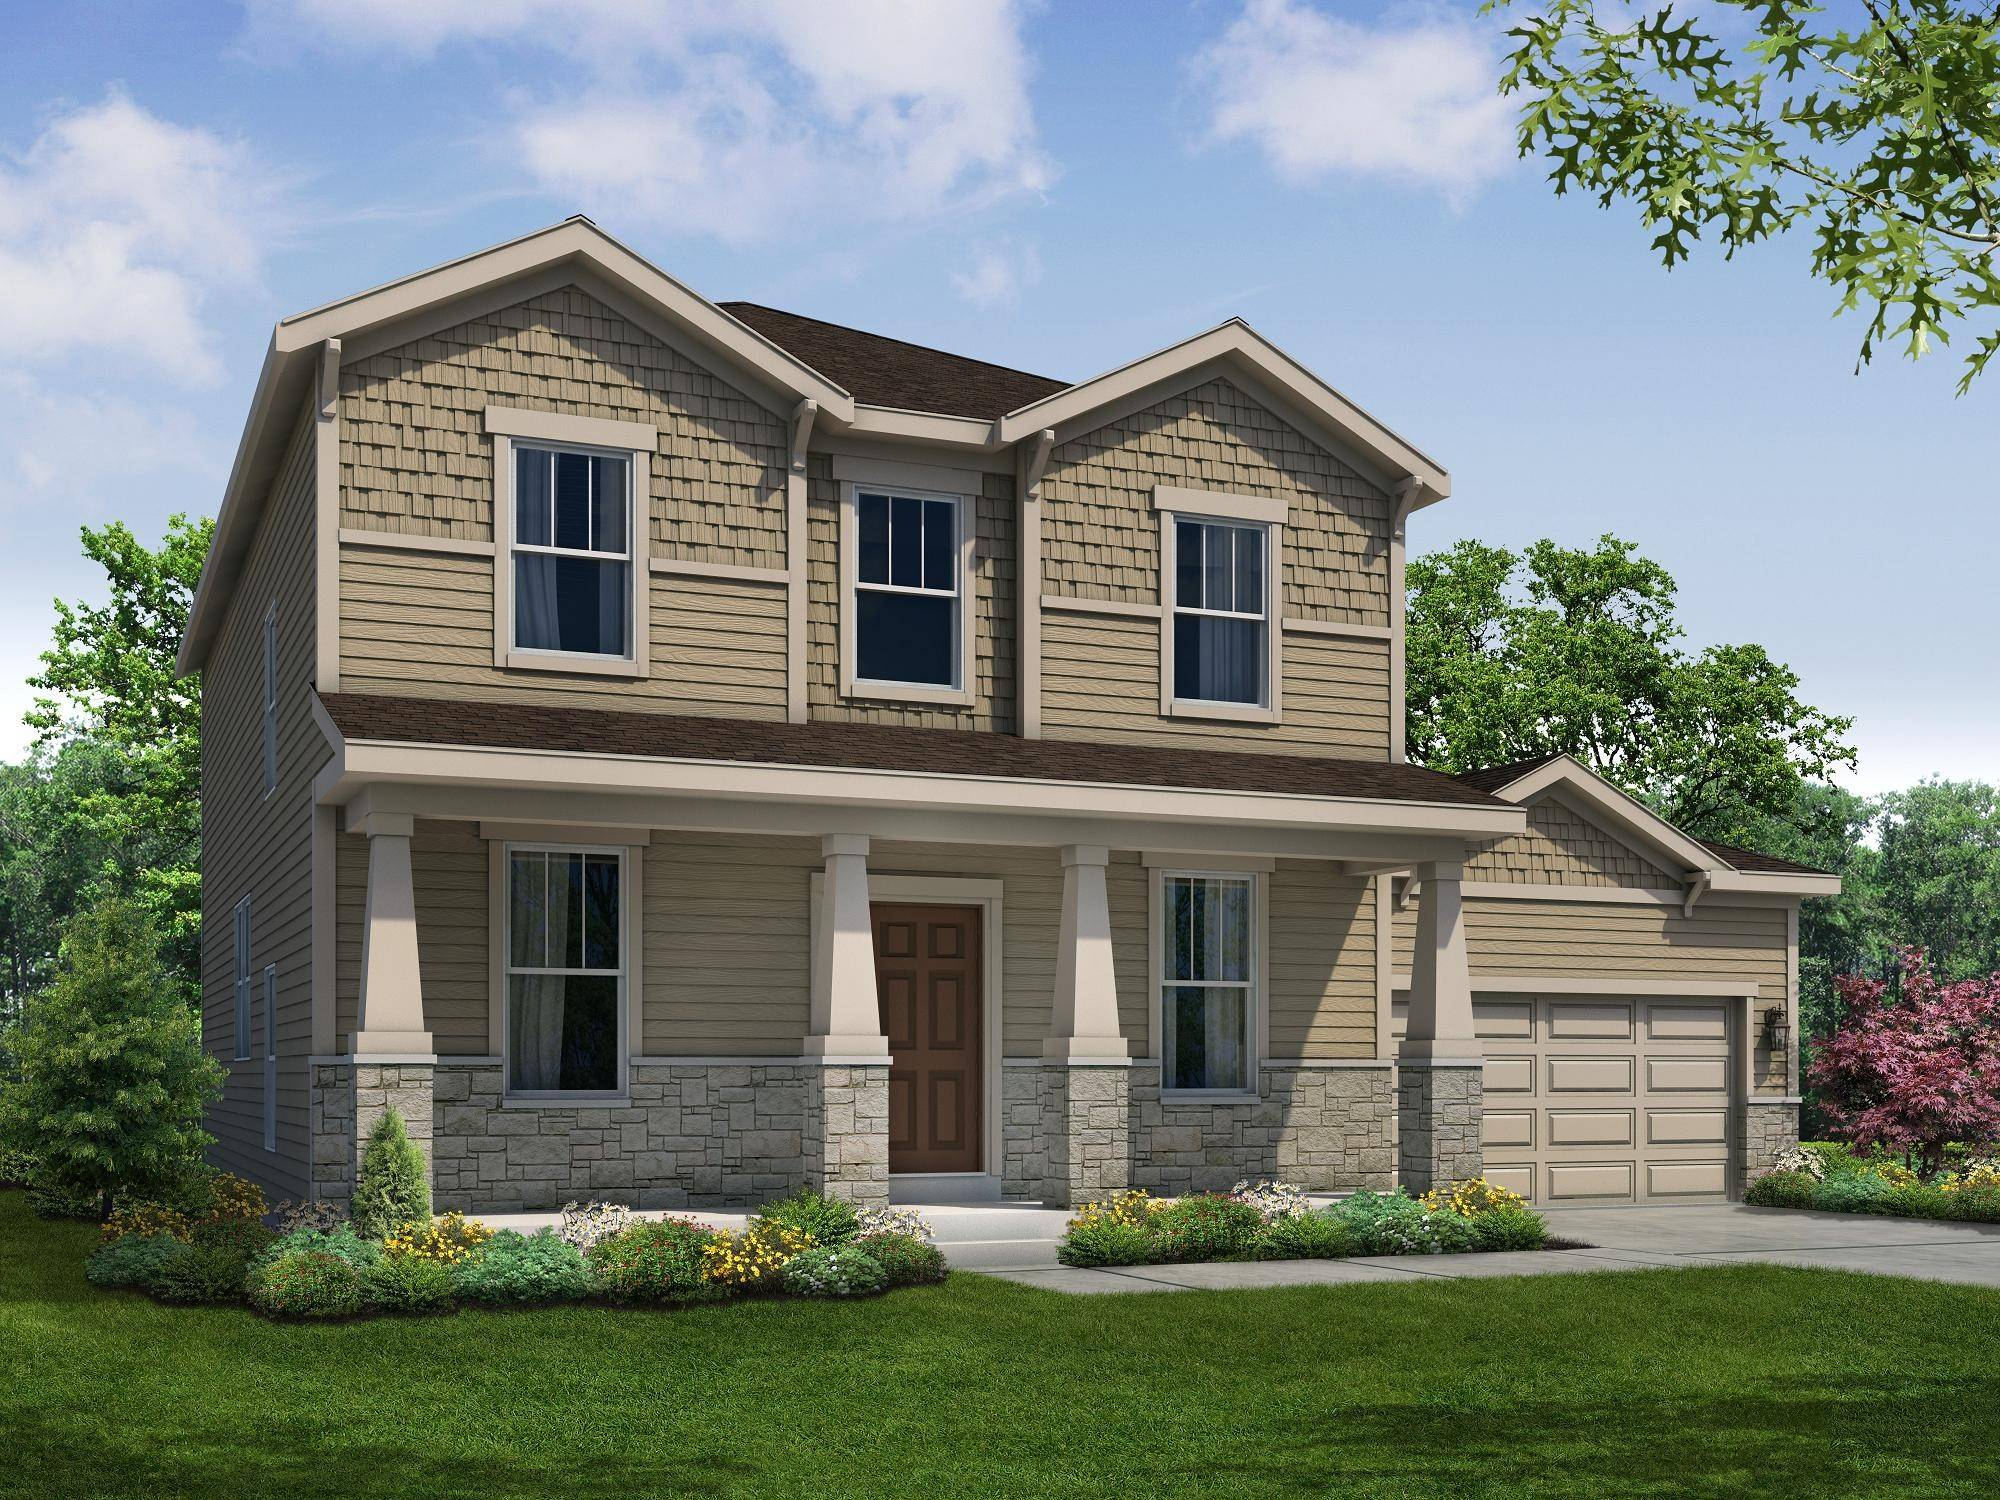 At its Highland Woods community in Elgin, William Ryan Homes will soon have a Shannon floor plan available for move in.